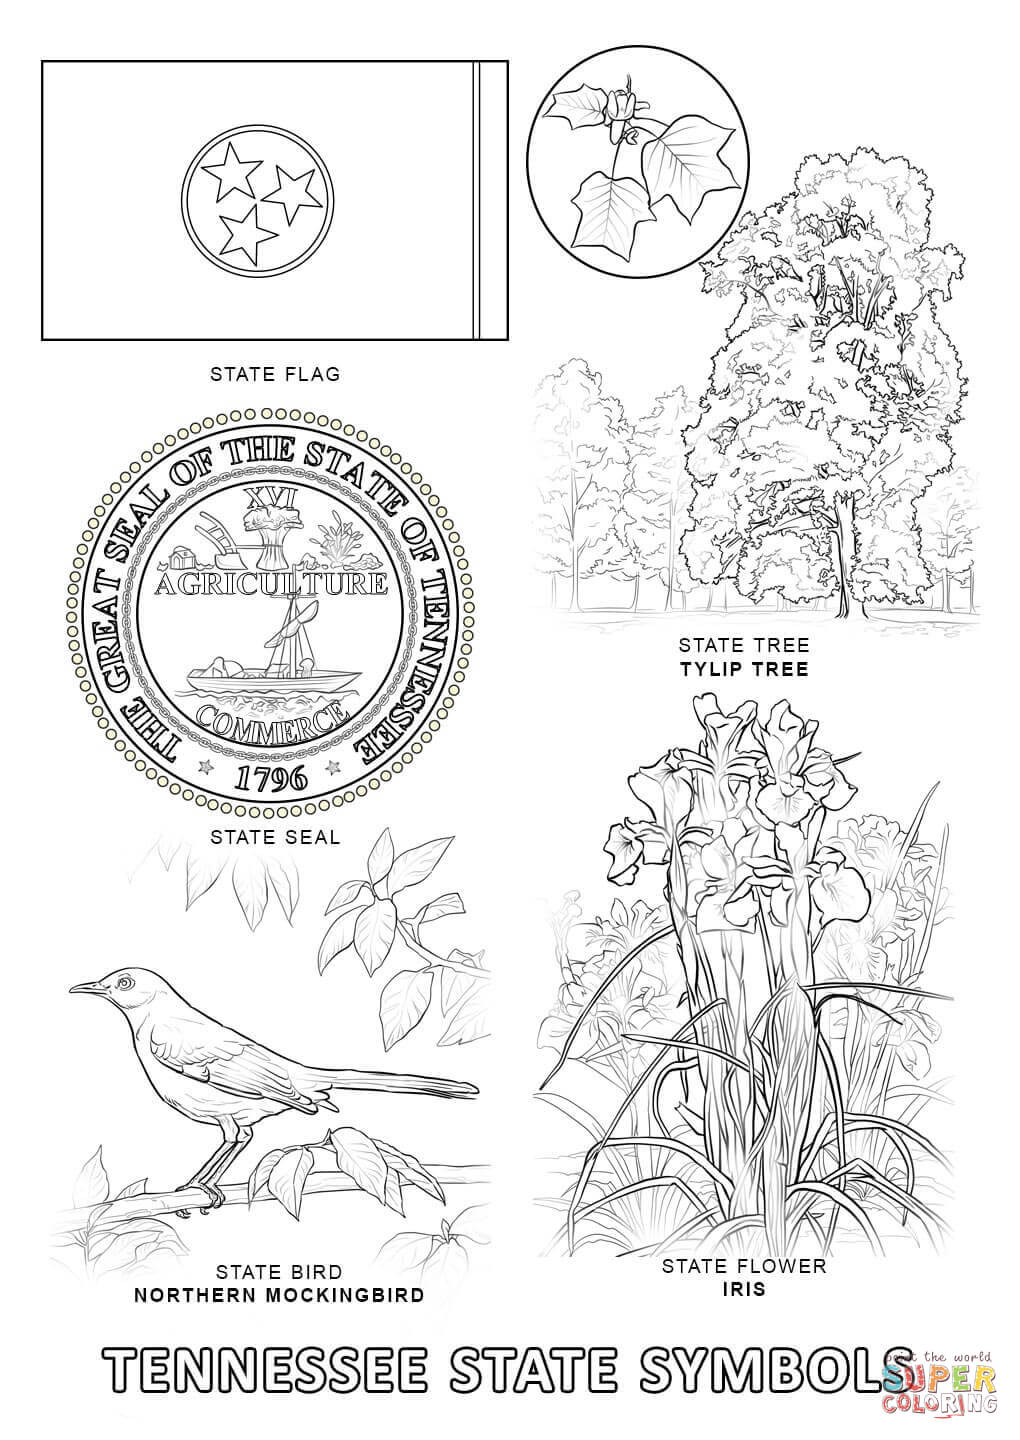 Tennessee State Symbols coloring page | Free Printable Coloring Pages